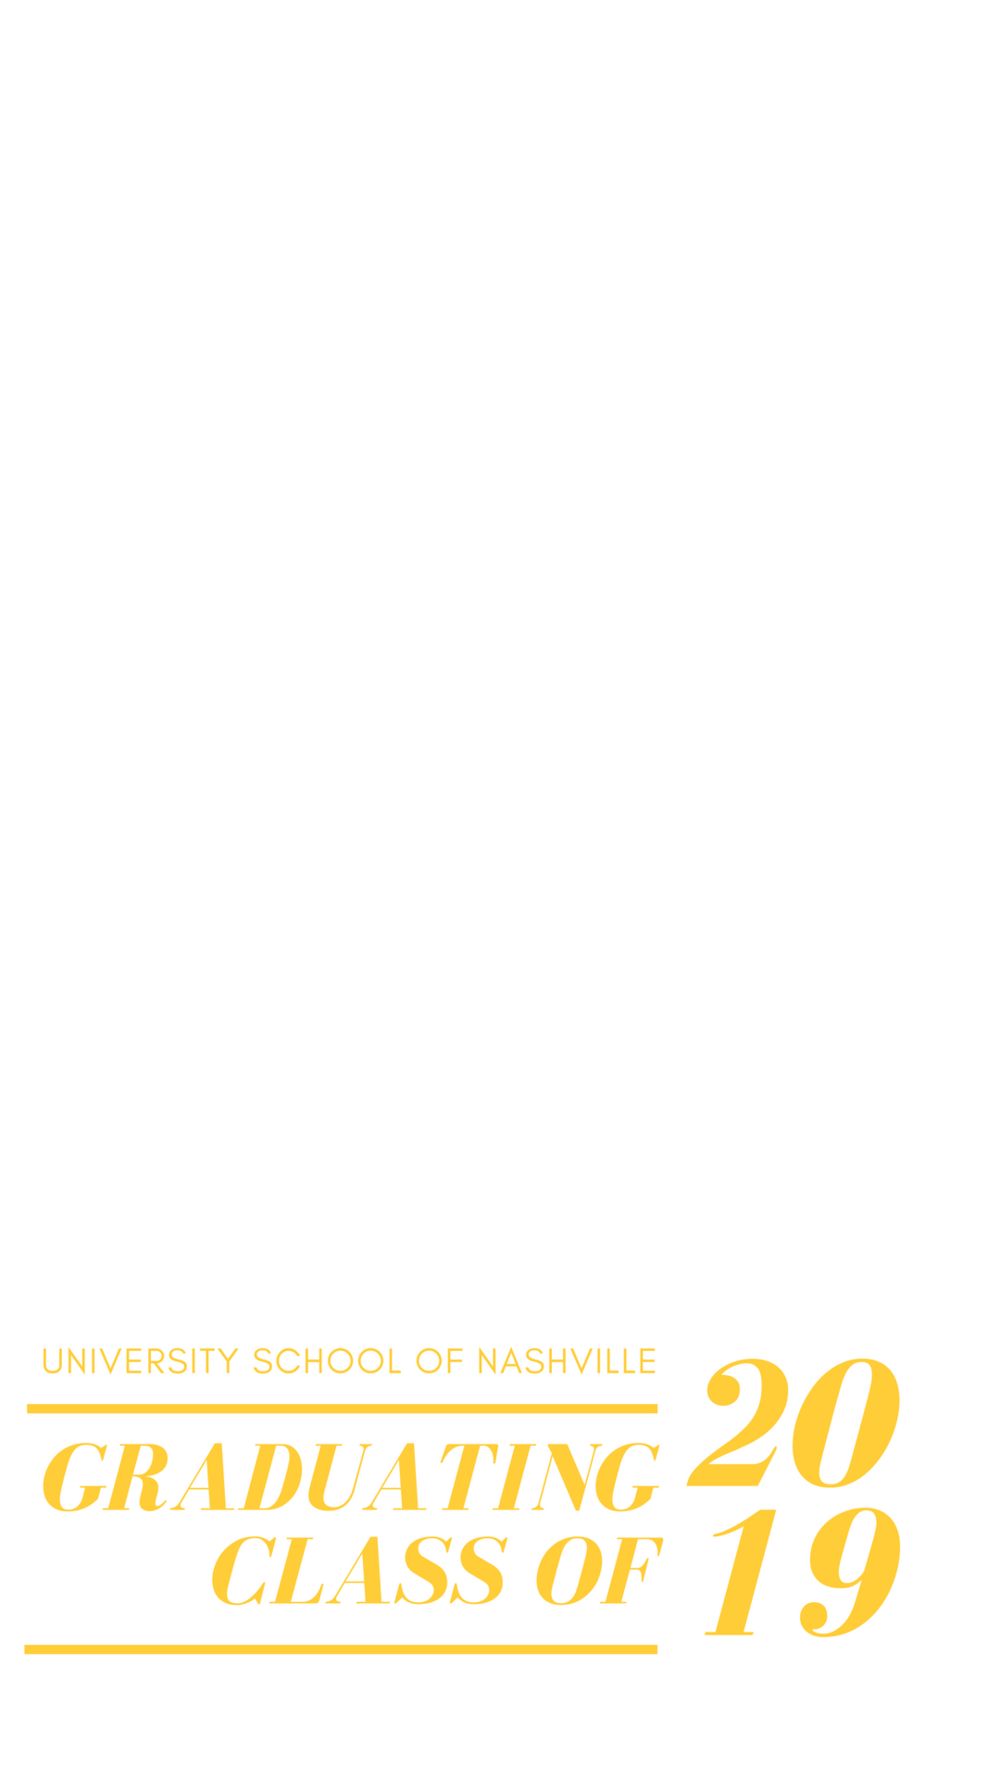 Golden University Graduation Snapchat Filter.png